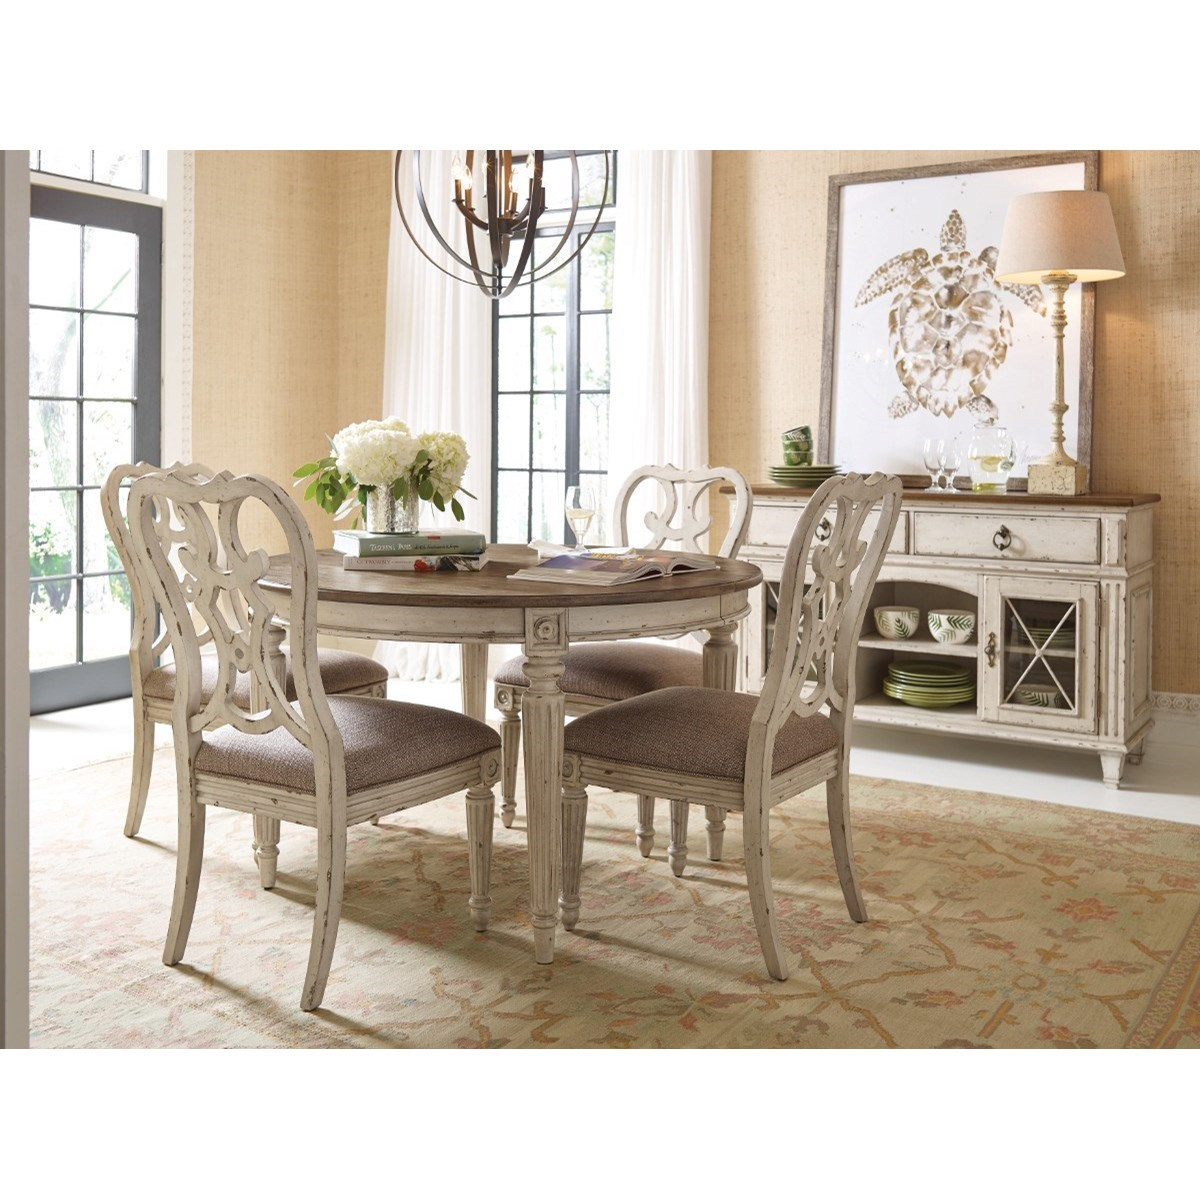 American Drew Dining Room Furniture: American Drew SOUTHBURY Round Dining Table With Leaves